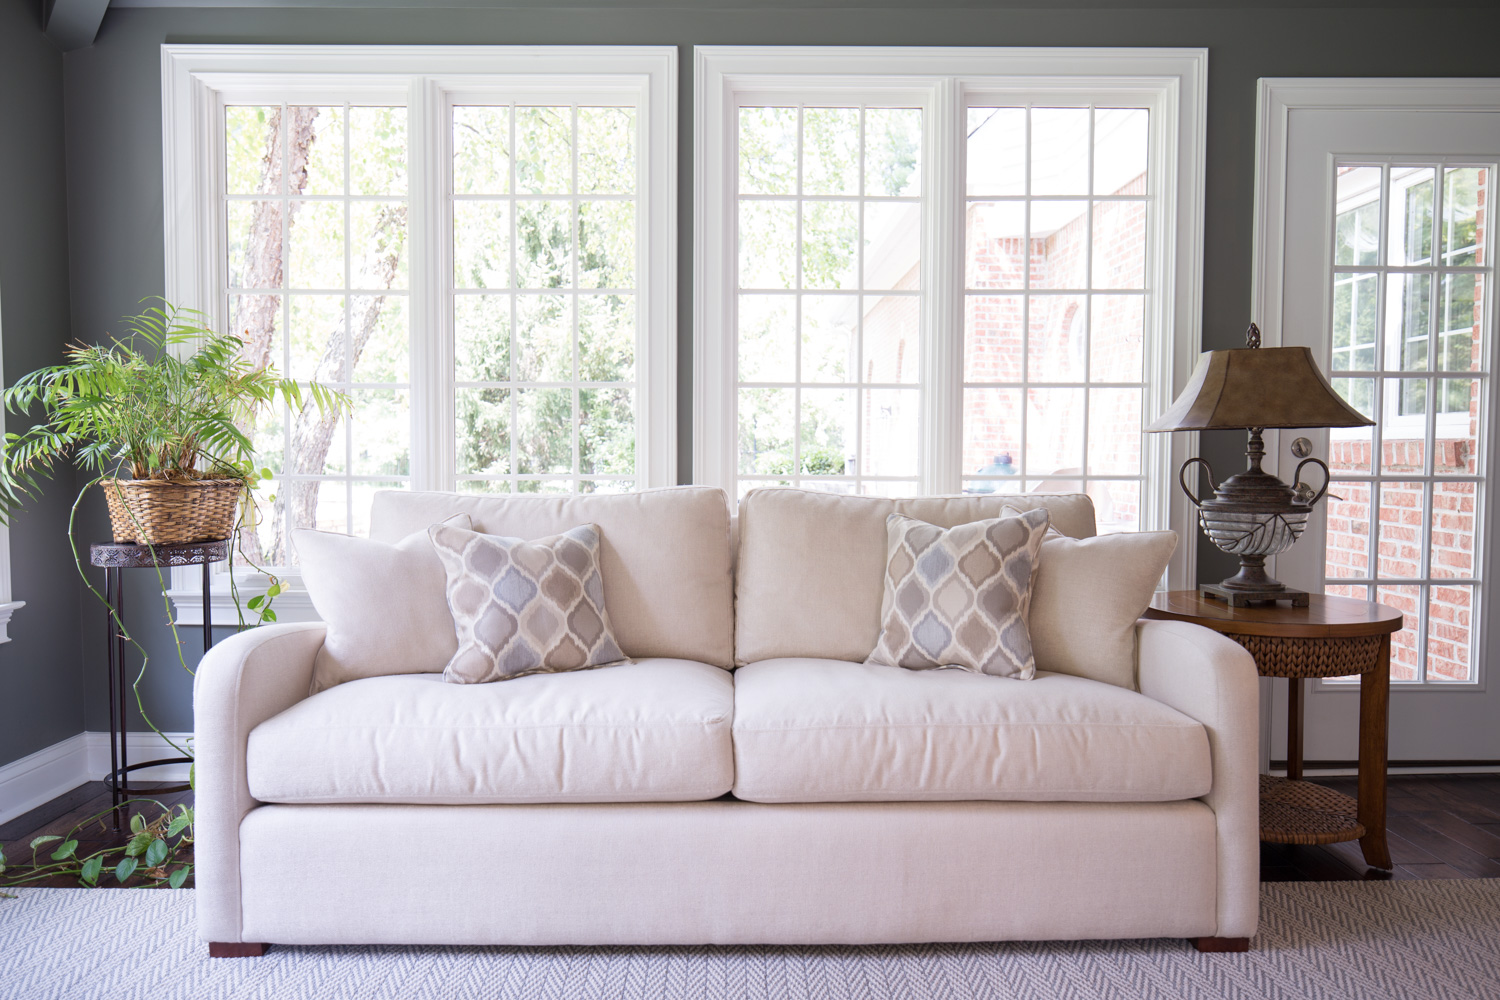 Dovetail Group Sunroom Remodel